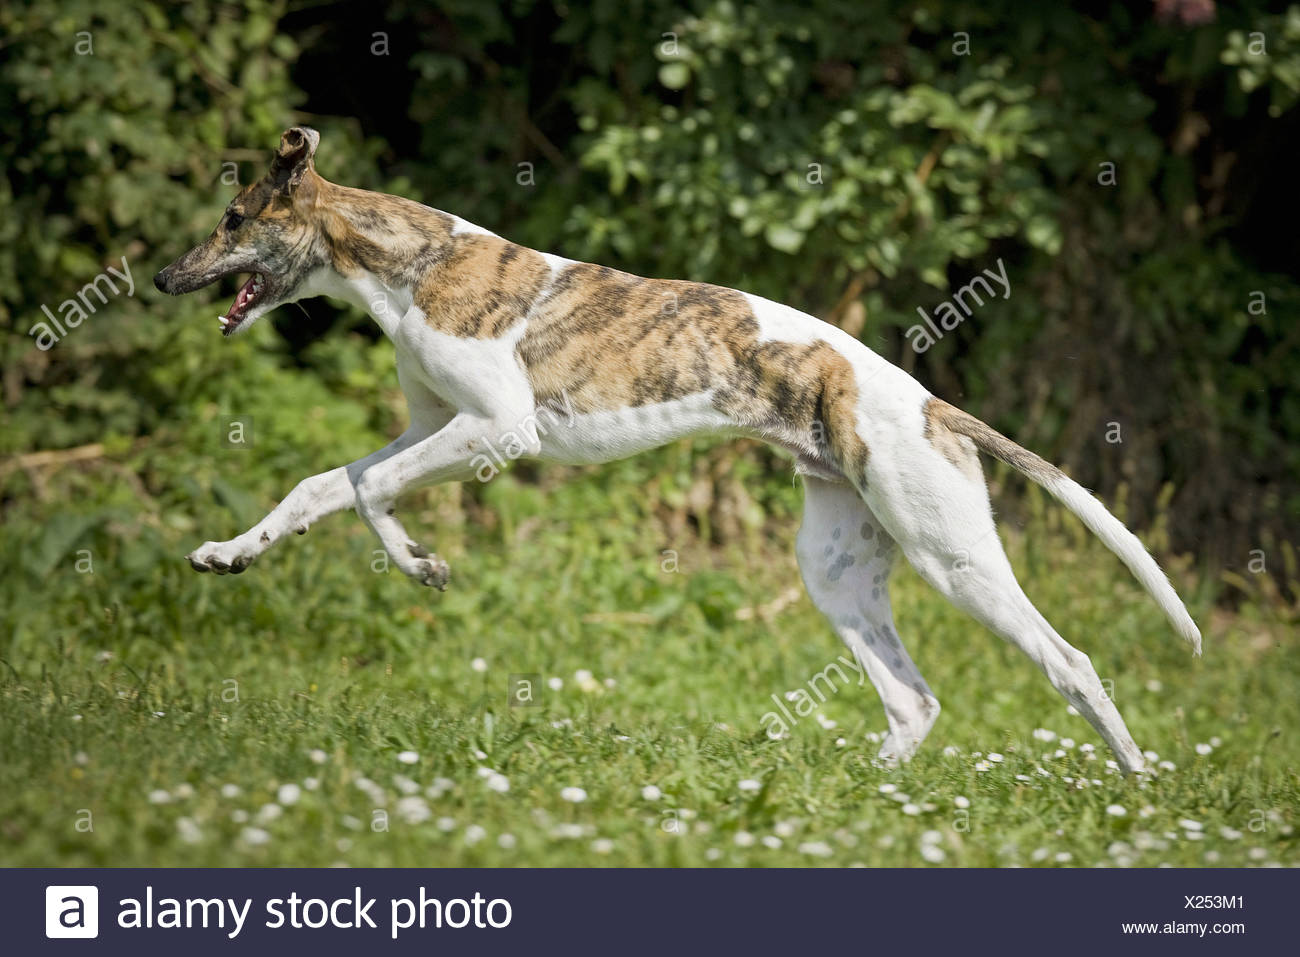 Greyhound dog - running on meadow Stock Photo